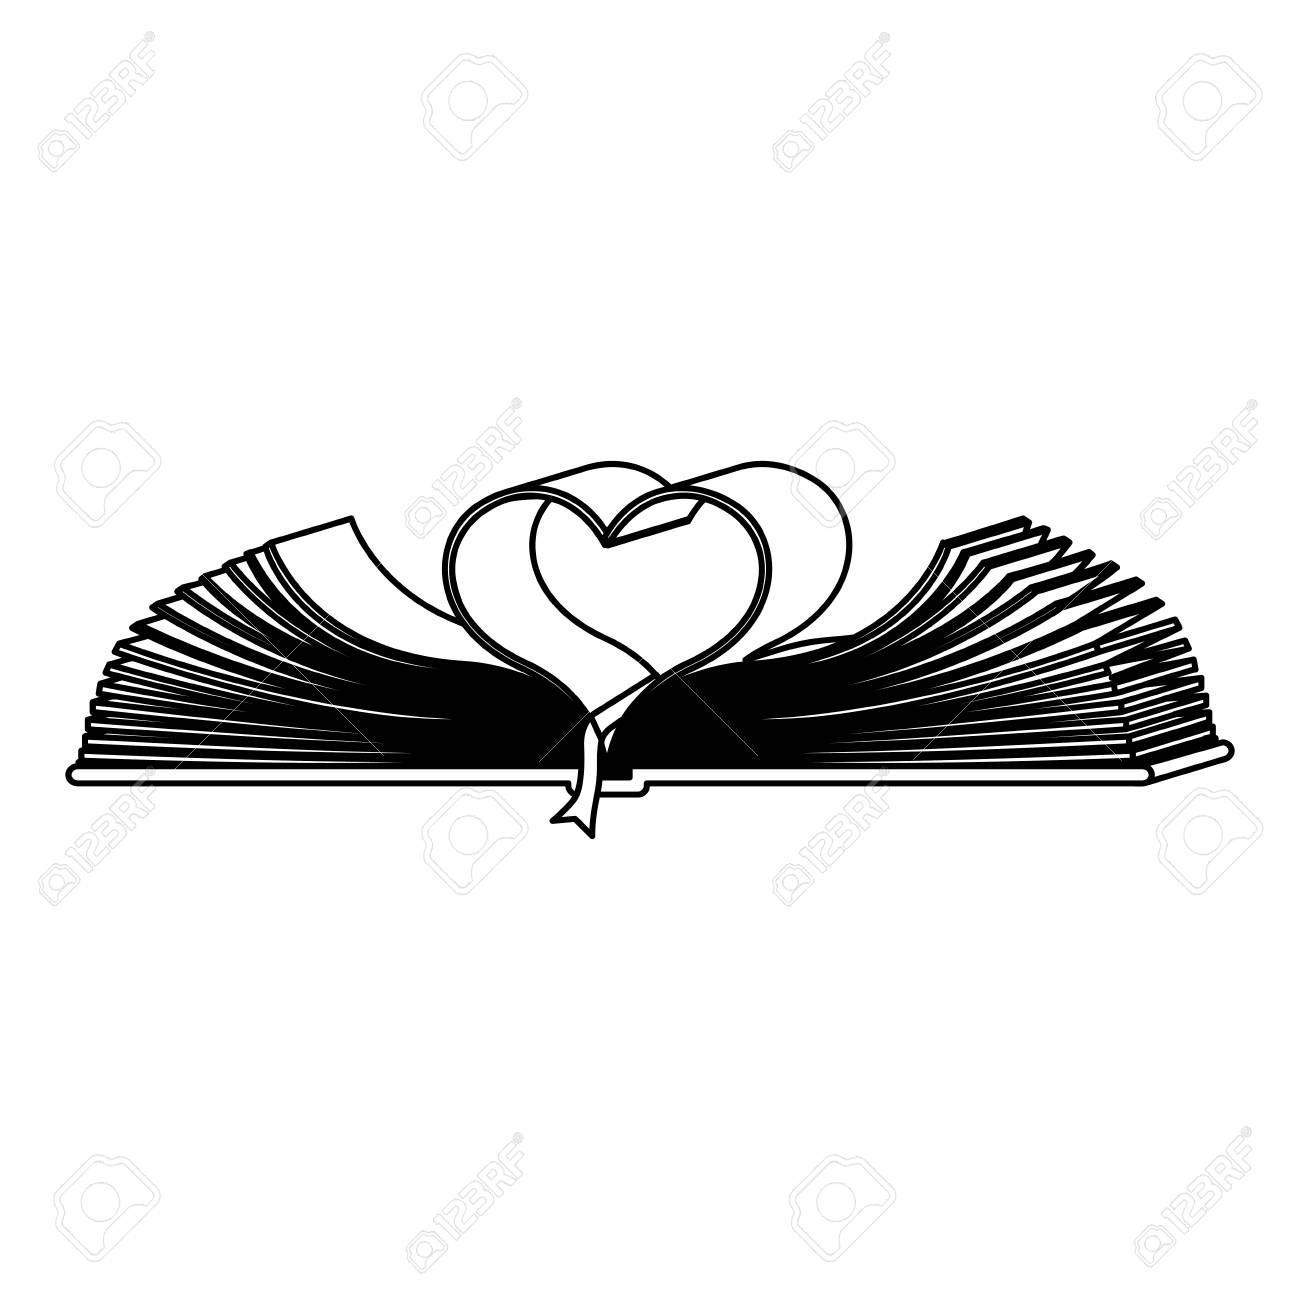 1300x1300 Monochrome Contour With Holy Bible Open With Sheets In Shape Heart